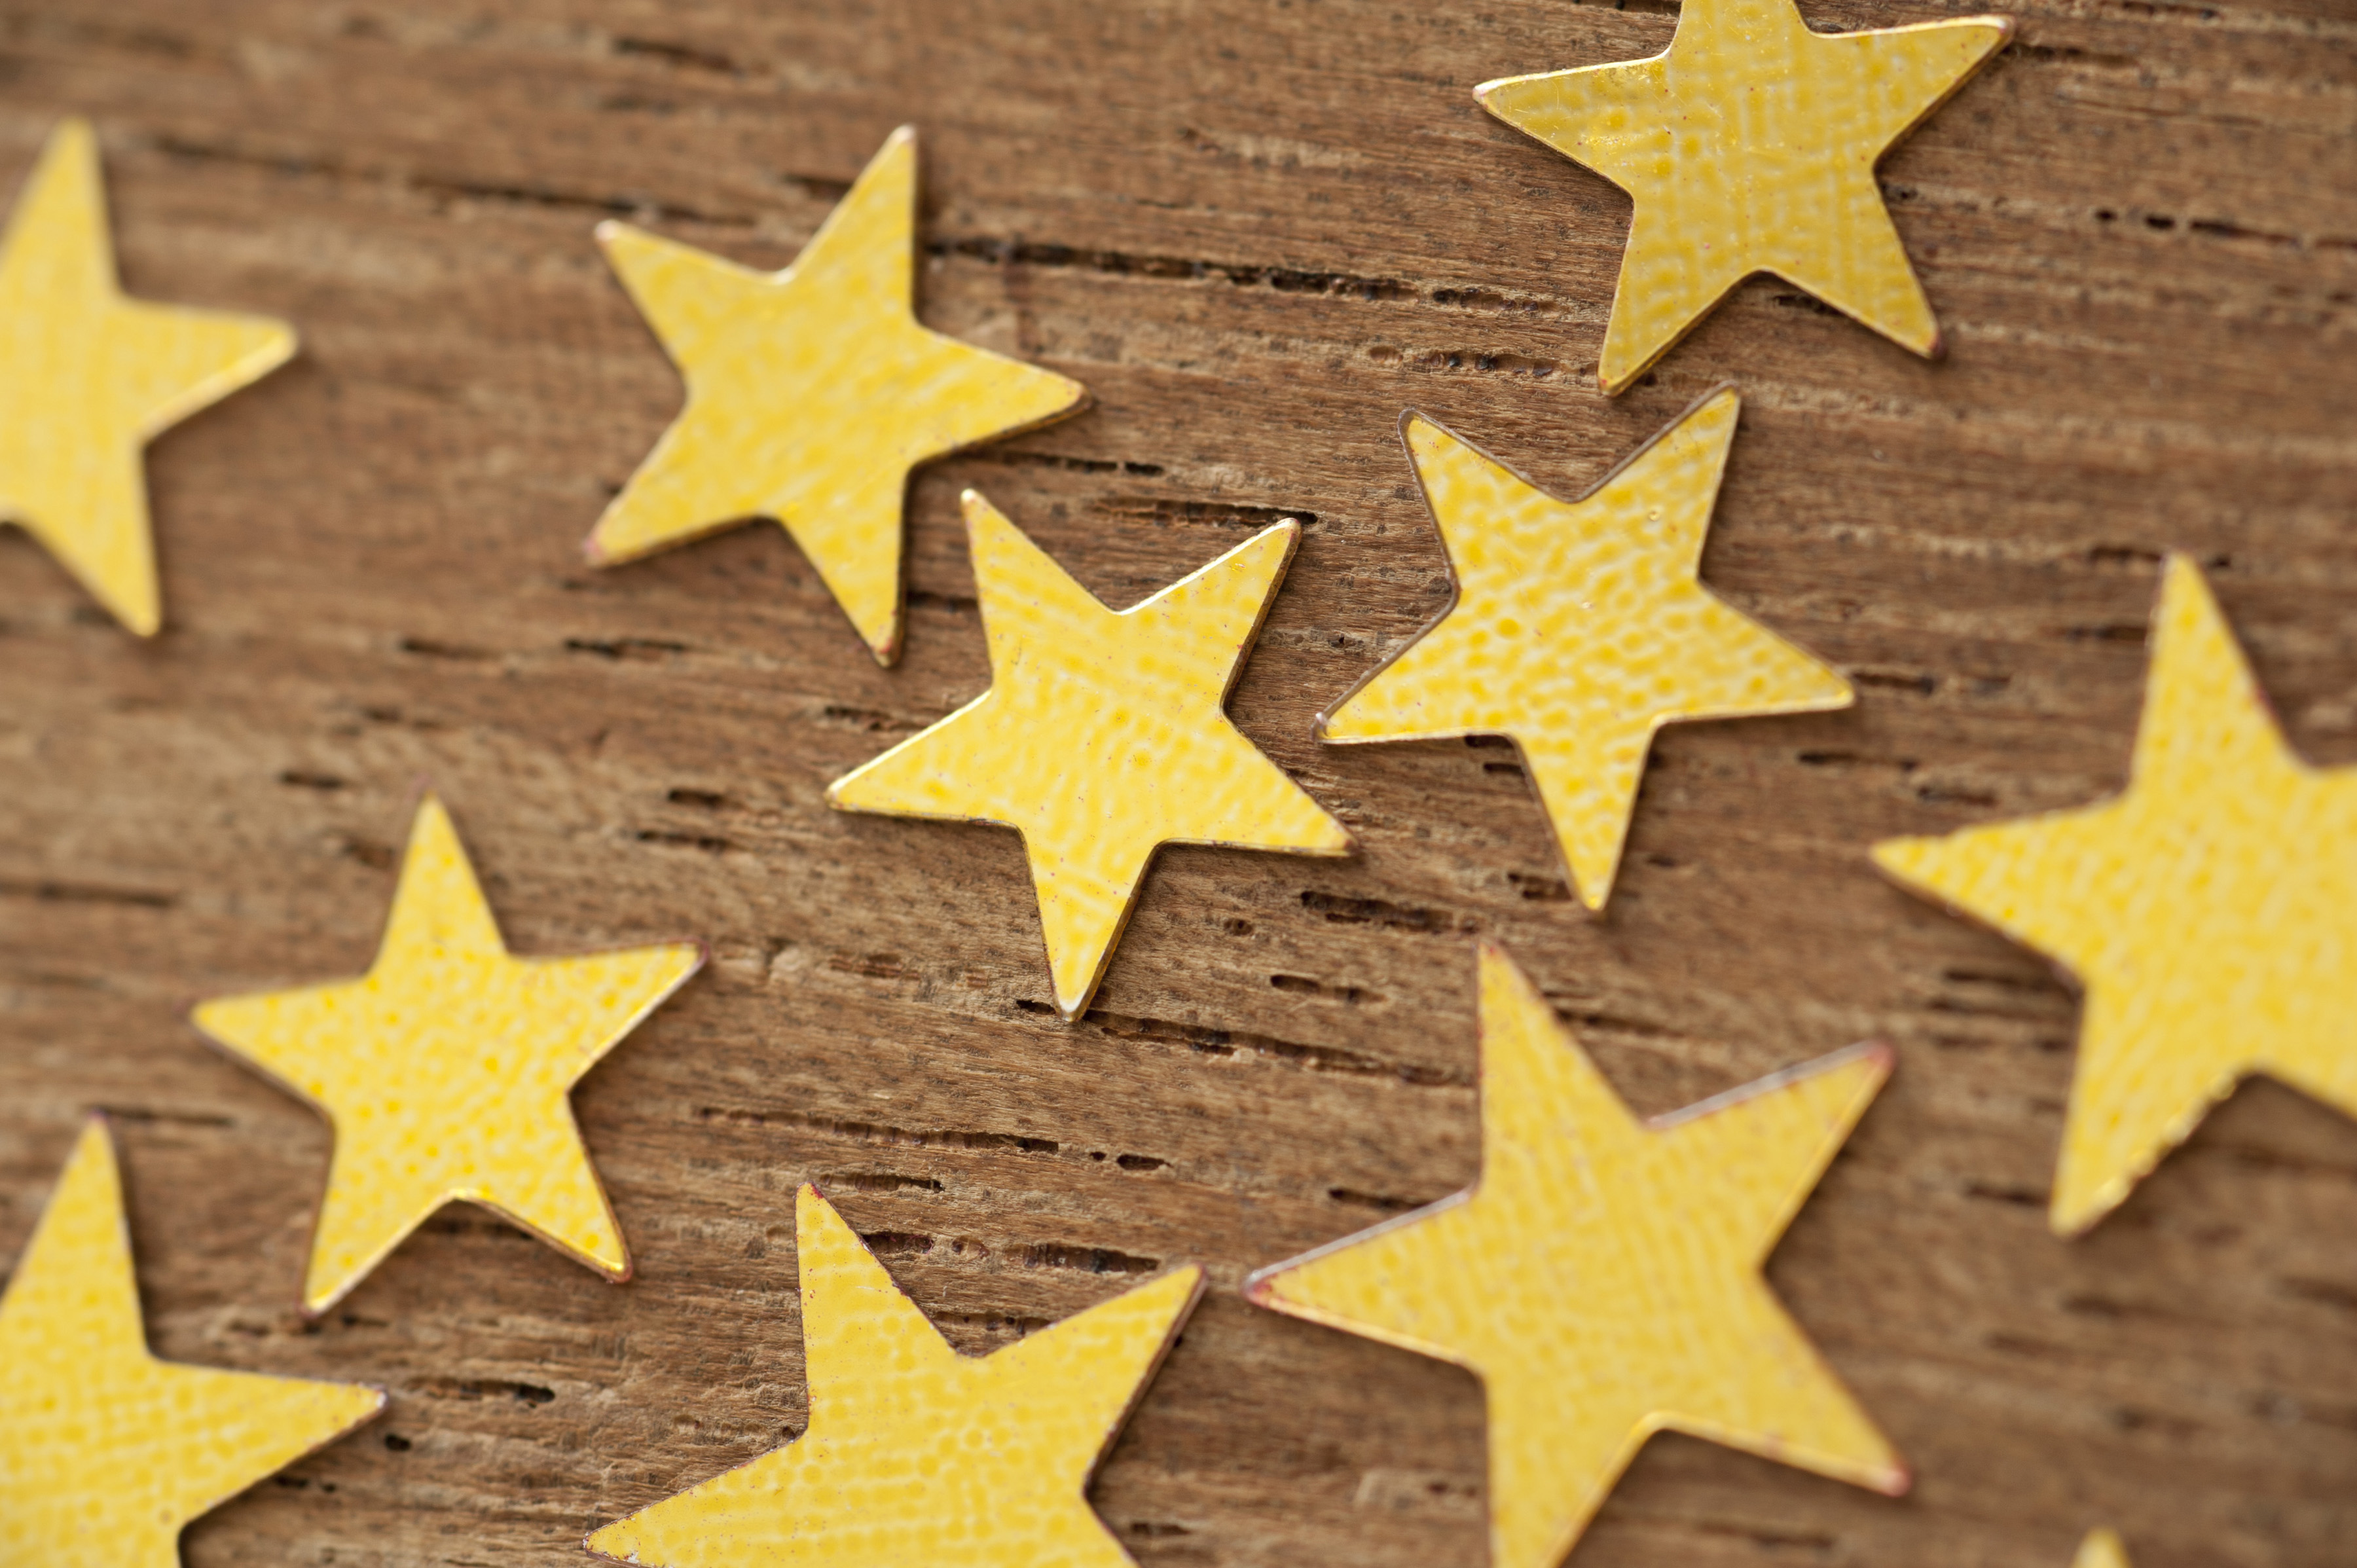 Concept Background Image of Golden Stars in Various Sizes Scattered on Wooden Background